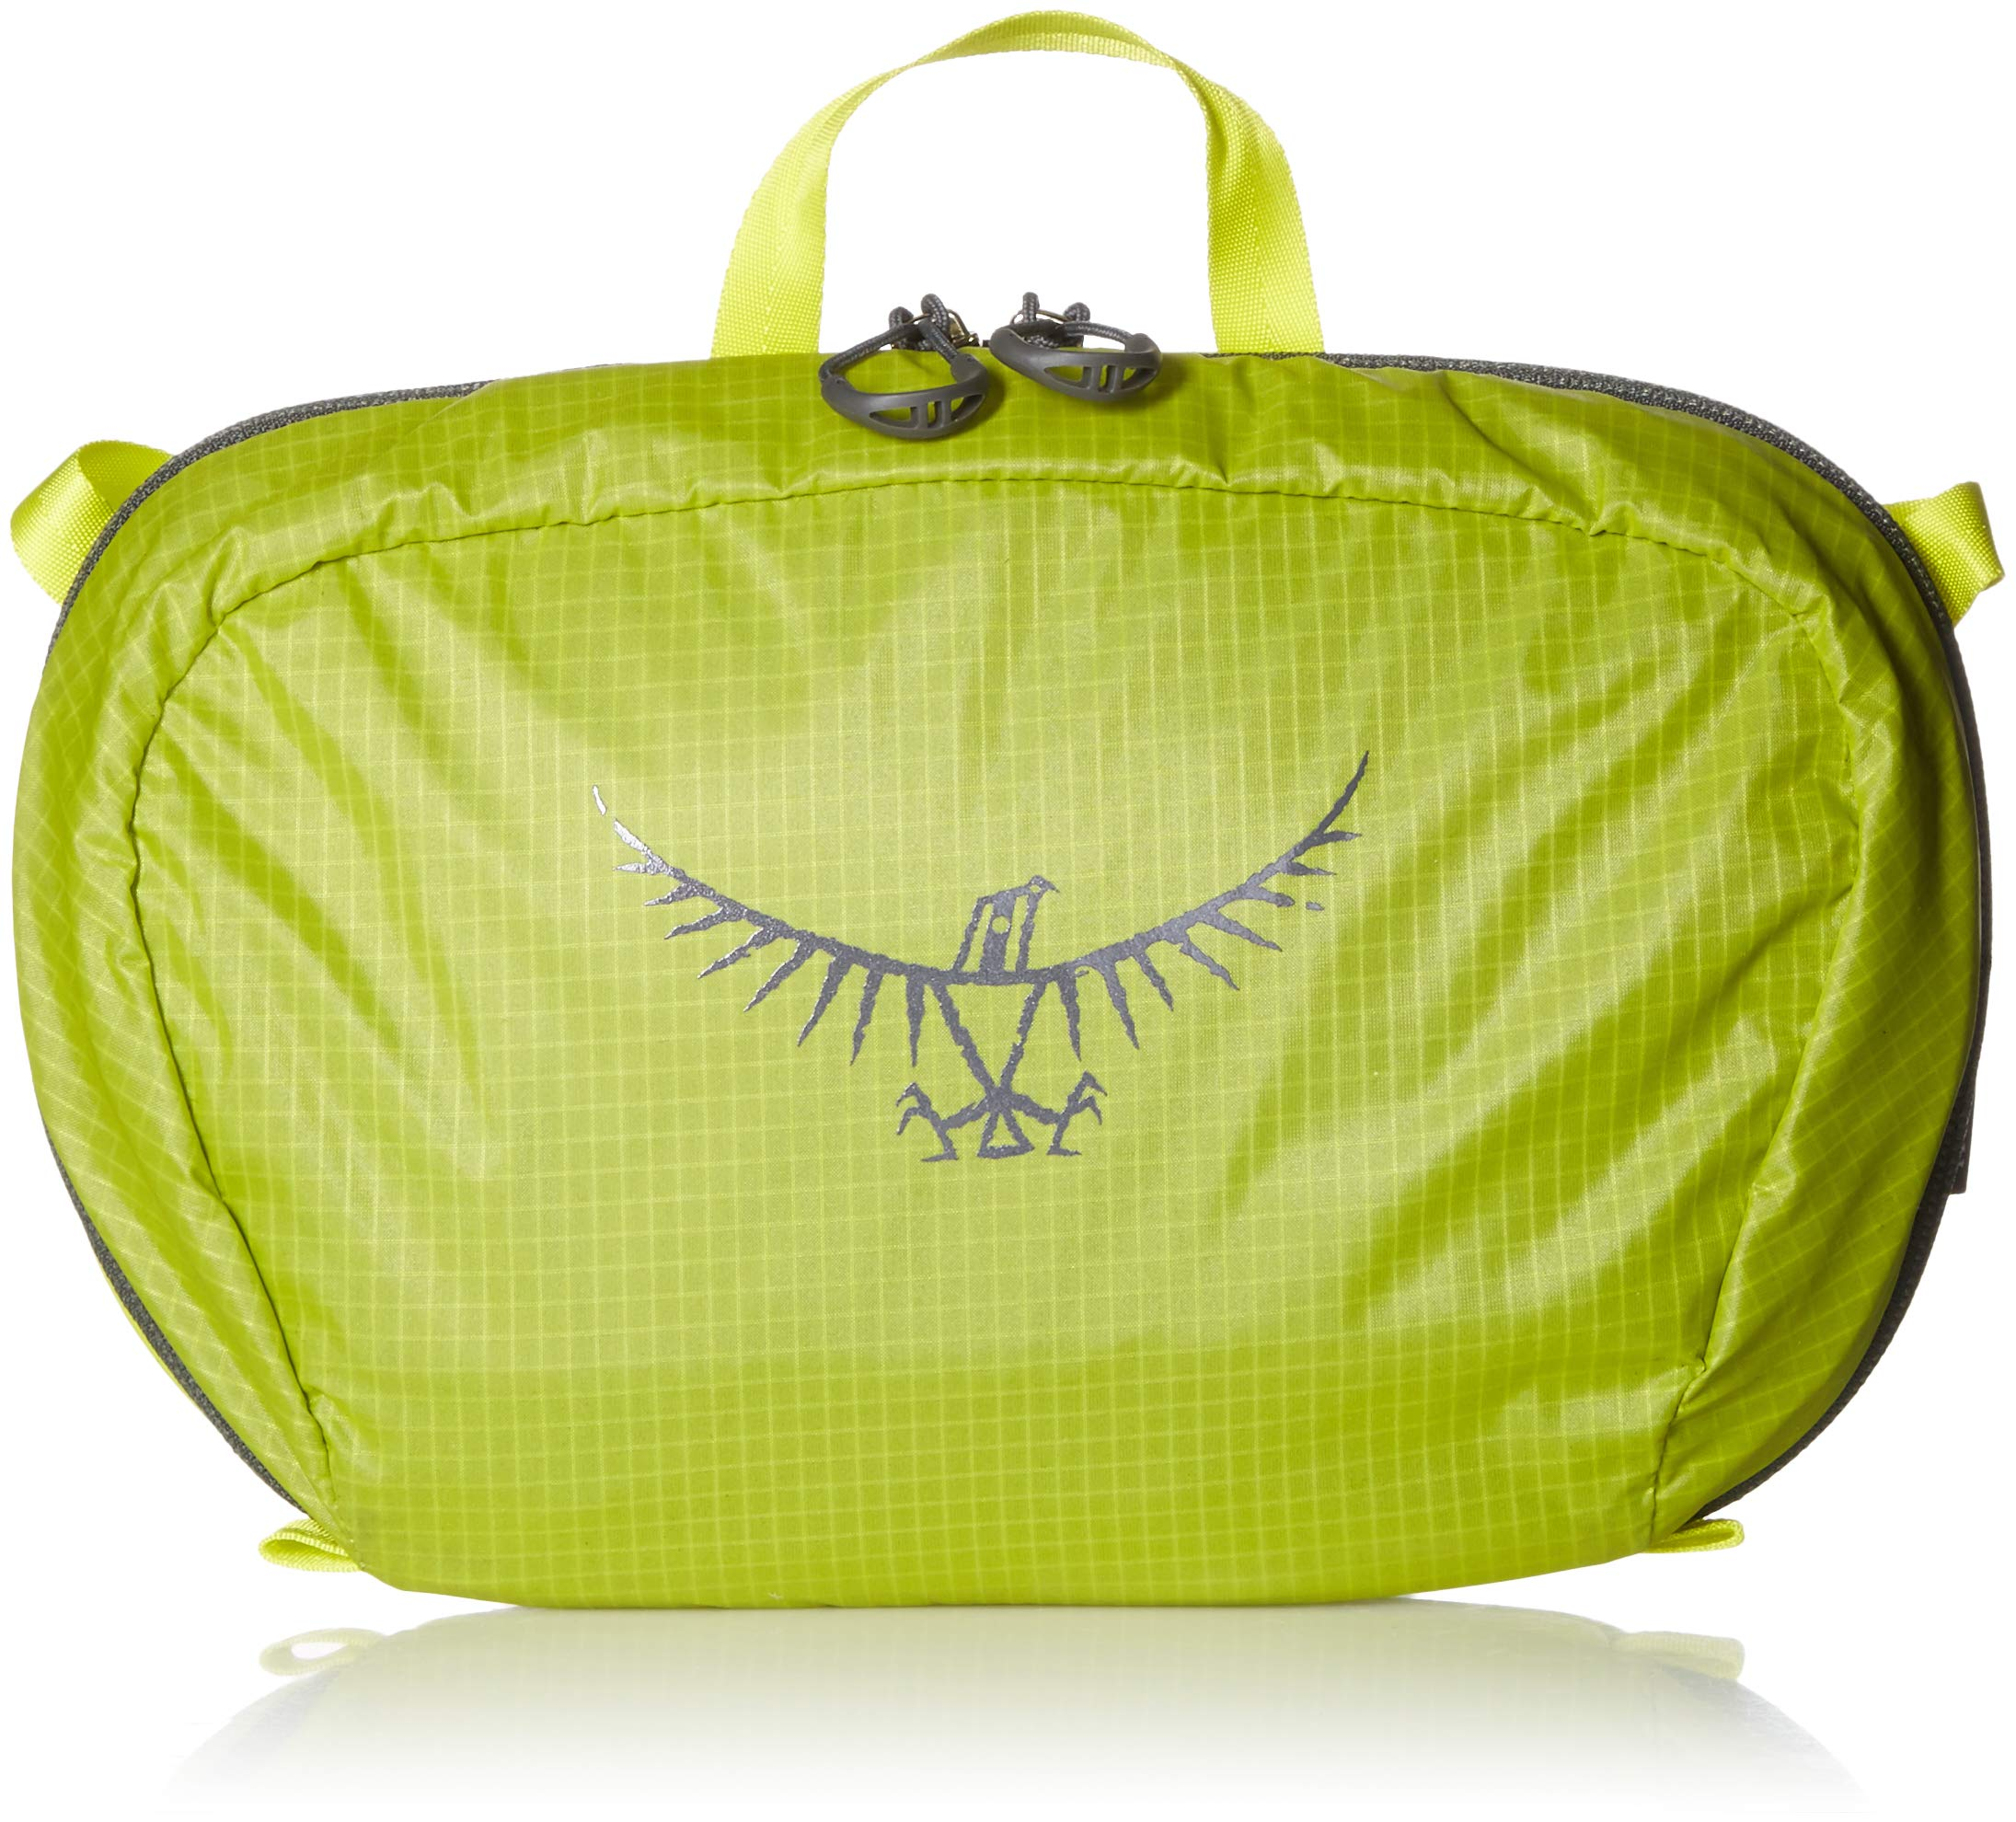 Osprey Packs Ultralight Toiletry Kit, Electric Lime, One Size by Osprey